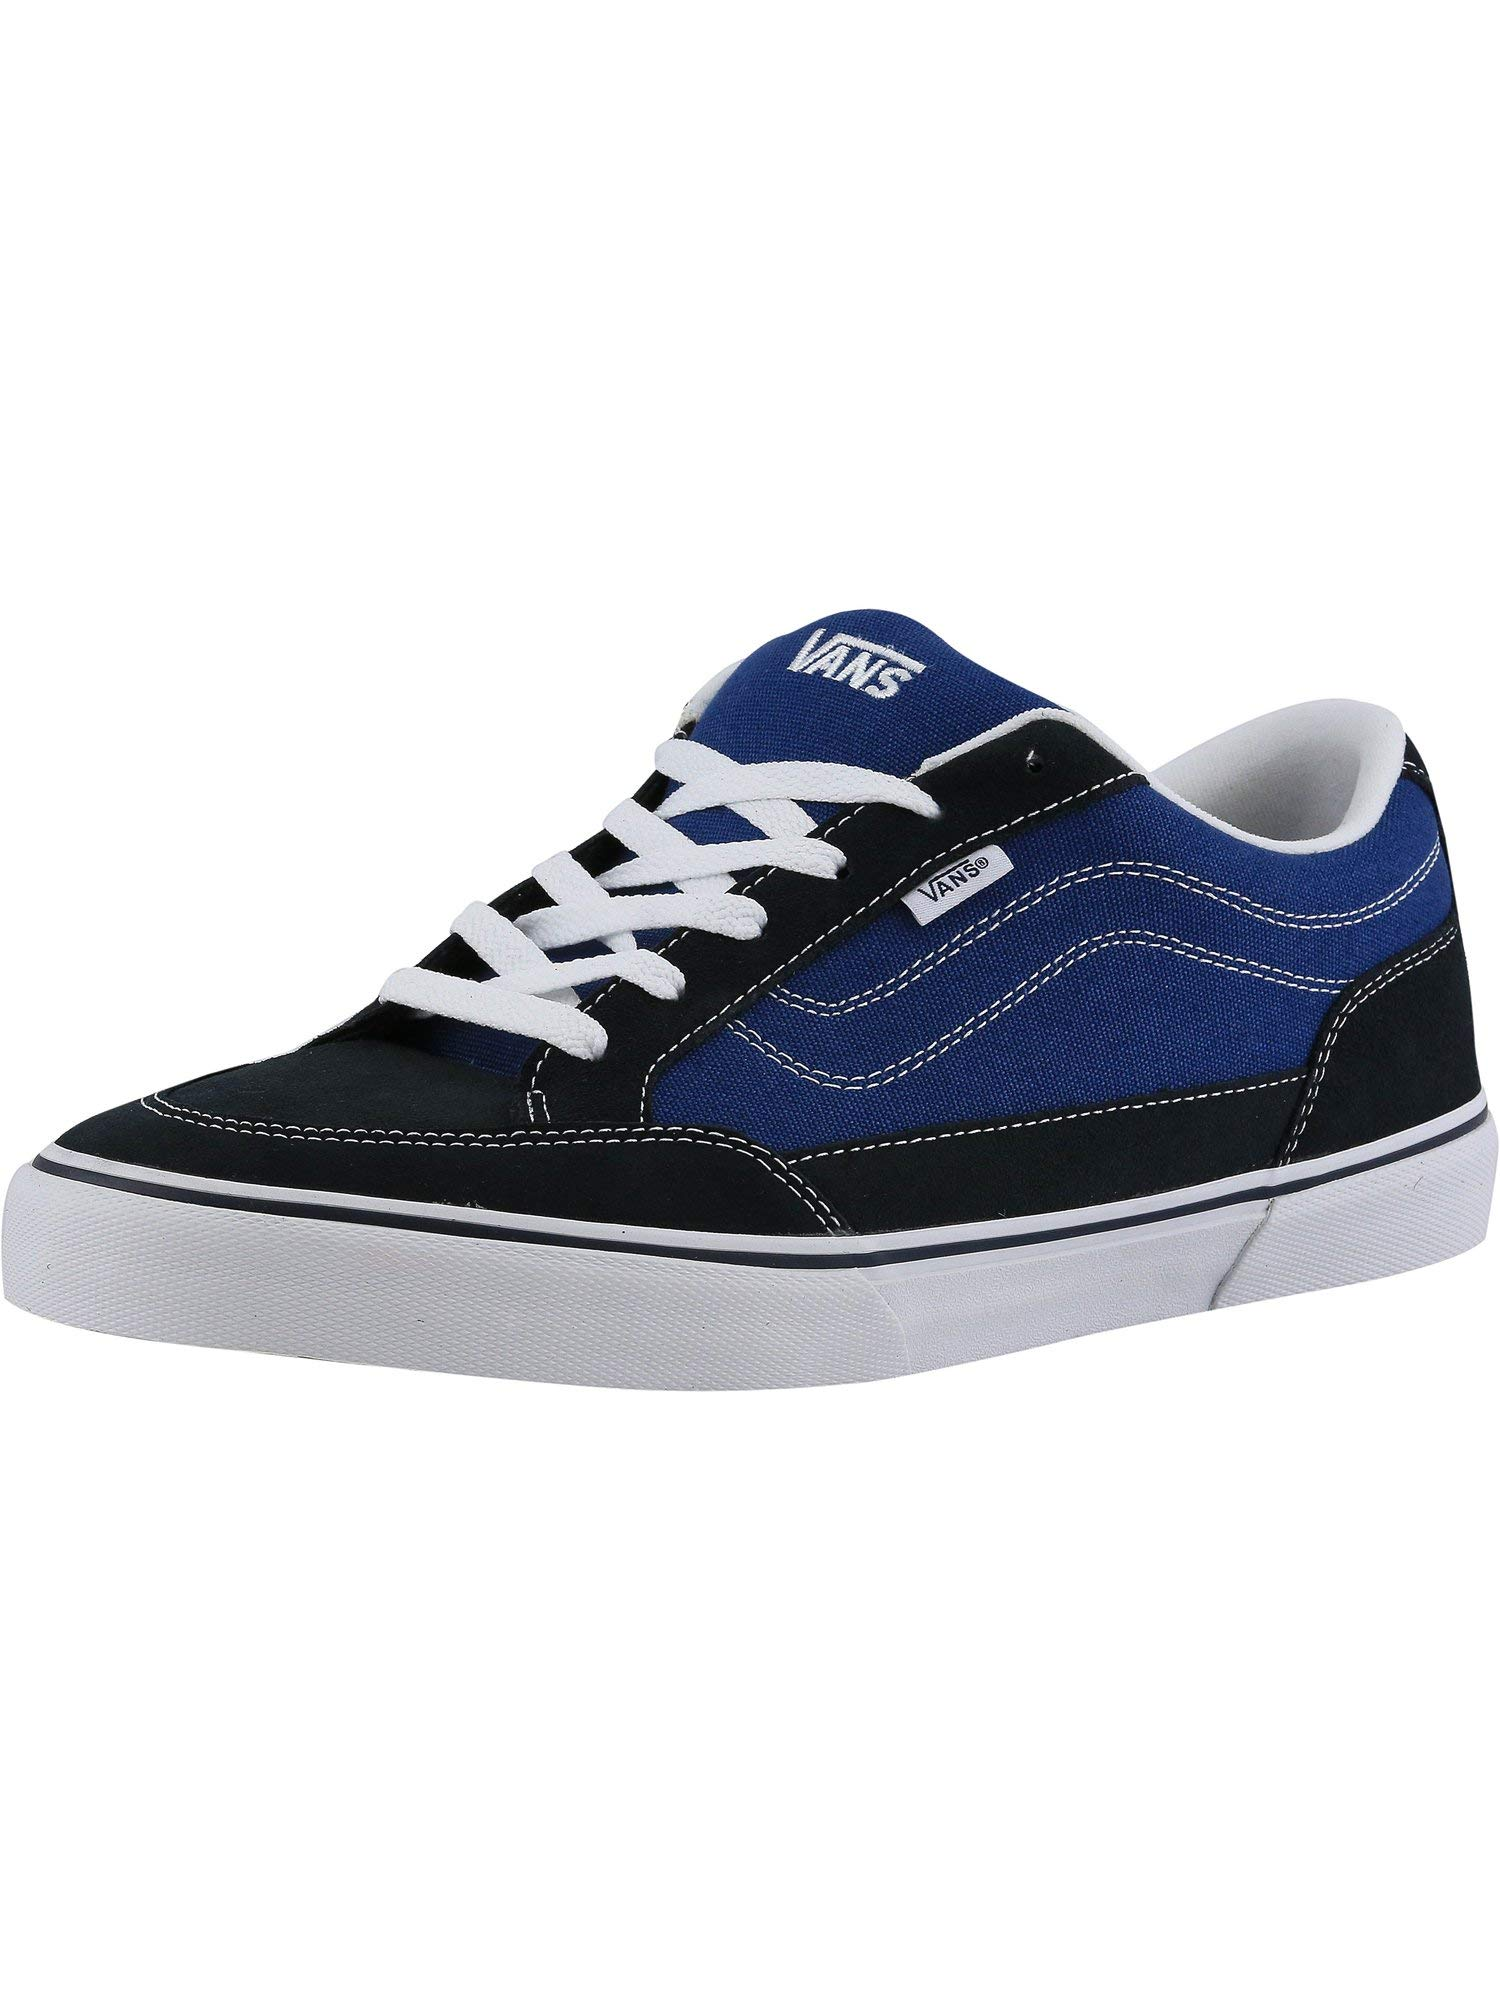 31feca3168 Galleon - Vans Men Bearcat Sneakers Skate Shoes (9.5 D(M) US